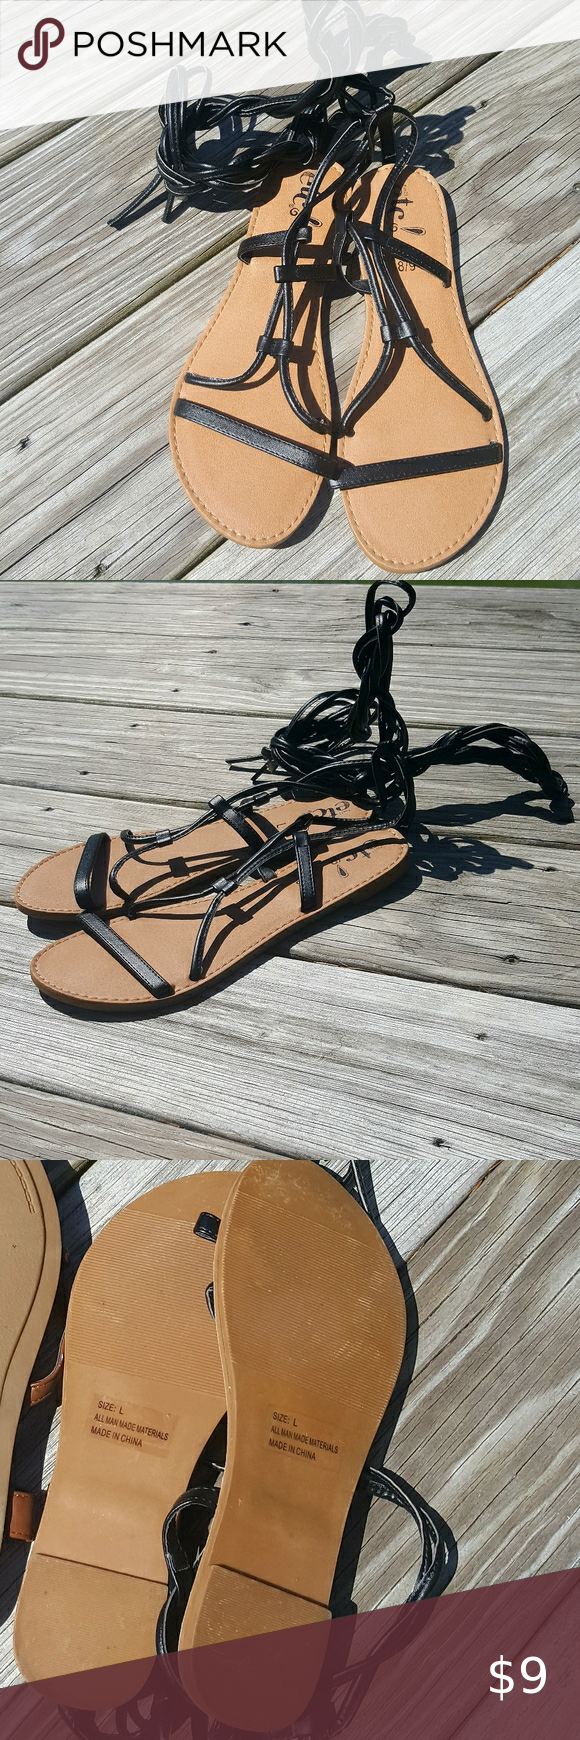 Sold 4 30 Gladiator Lace Up Sandals In 2020 Lace Up Sandals Lace Up Sandals